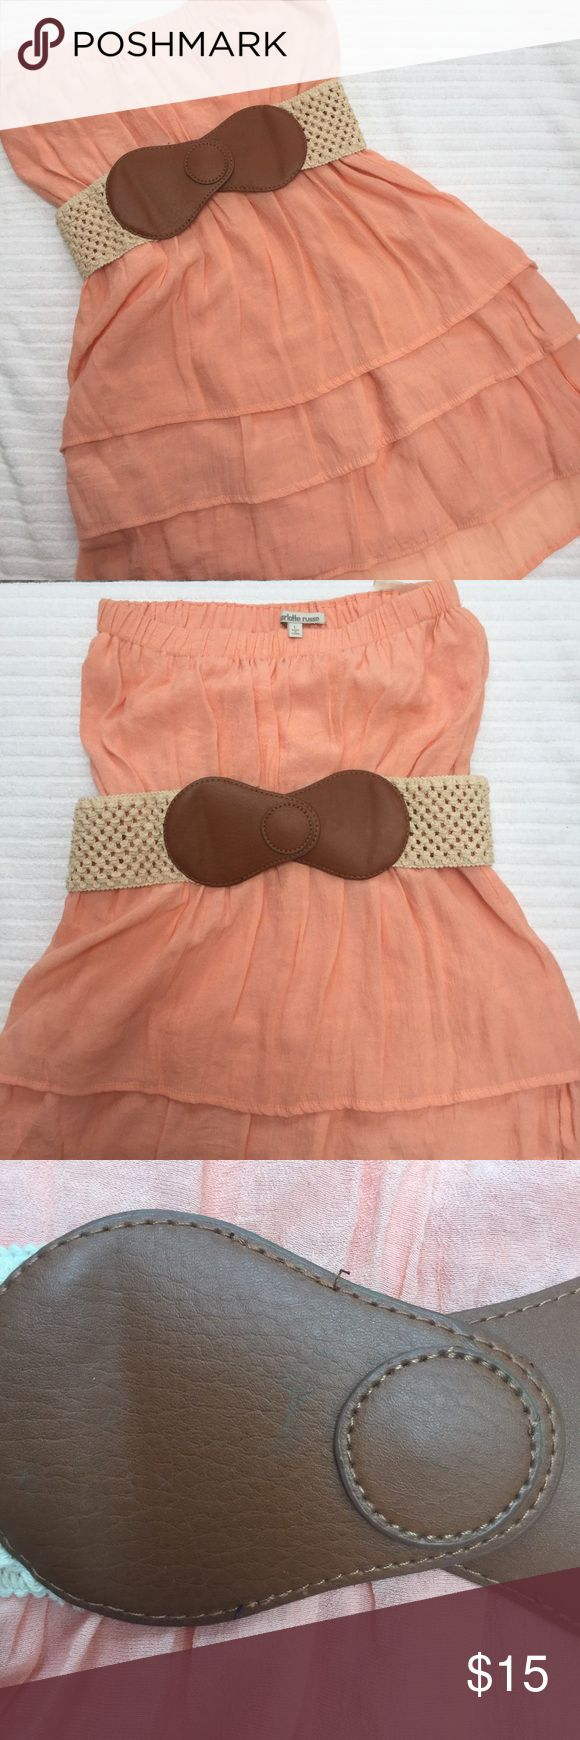 Strapless Ruffled Charlotte Russe Dress Lovely and light peach strapless dress from Charlotte Russe. Lightly worn, impeccable condition! Small sign of wear on the belt, shown in the third picture.   💕💕Closet details💕💕 Completely posh compliant closet! 🎀 no trades 🎀 no holds 🎀 offers only through offer button 🎀 very negotiable! I'm more likely to make you a better deal without the bundle feature! So talk to me and let's see what we can do! 🎀 Happy poshing! 🎀💕 Charlotte Russe…